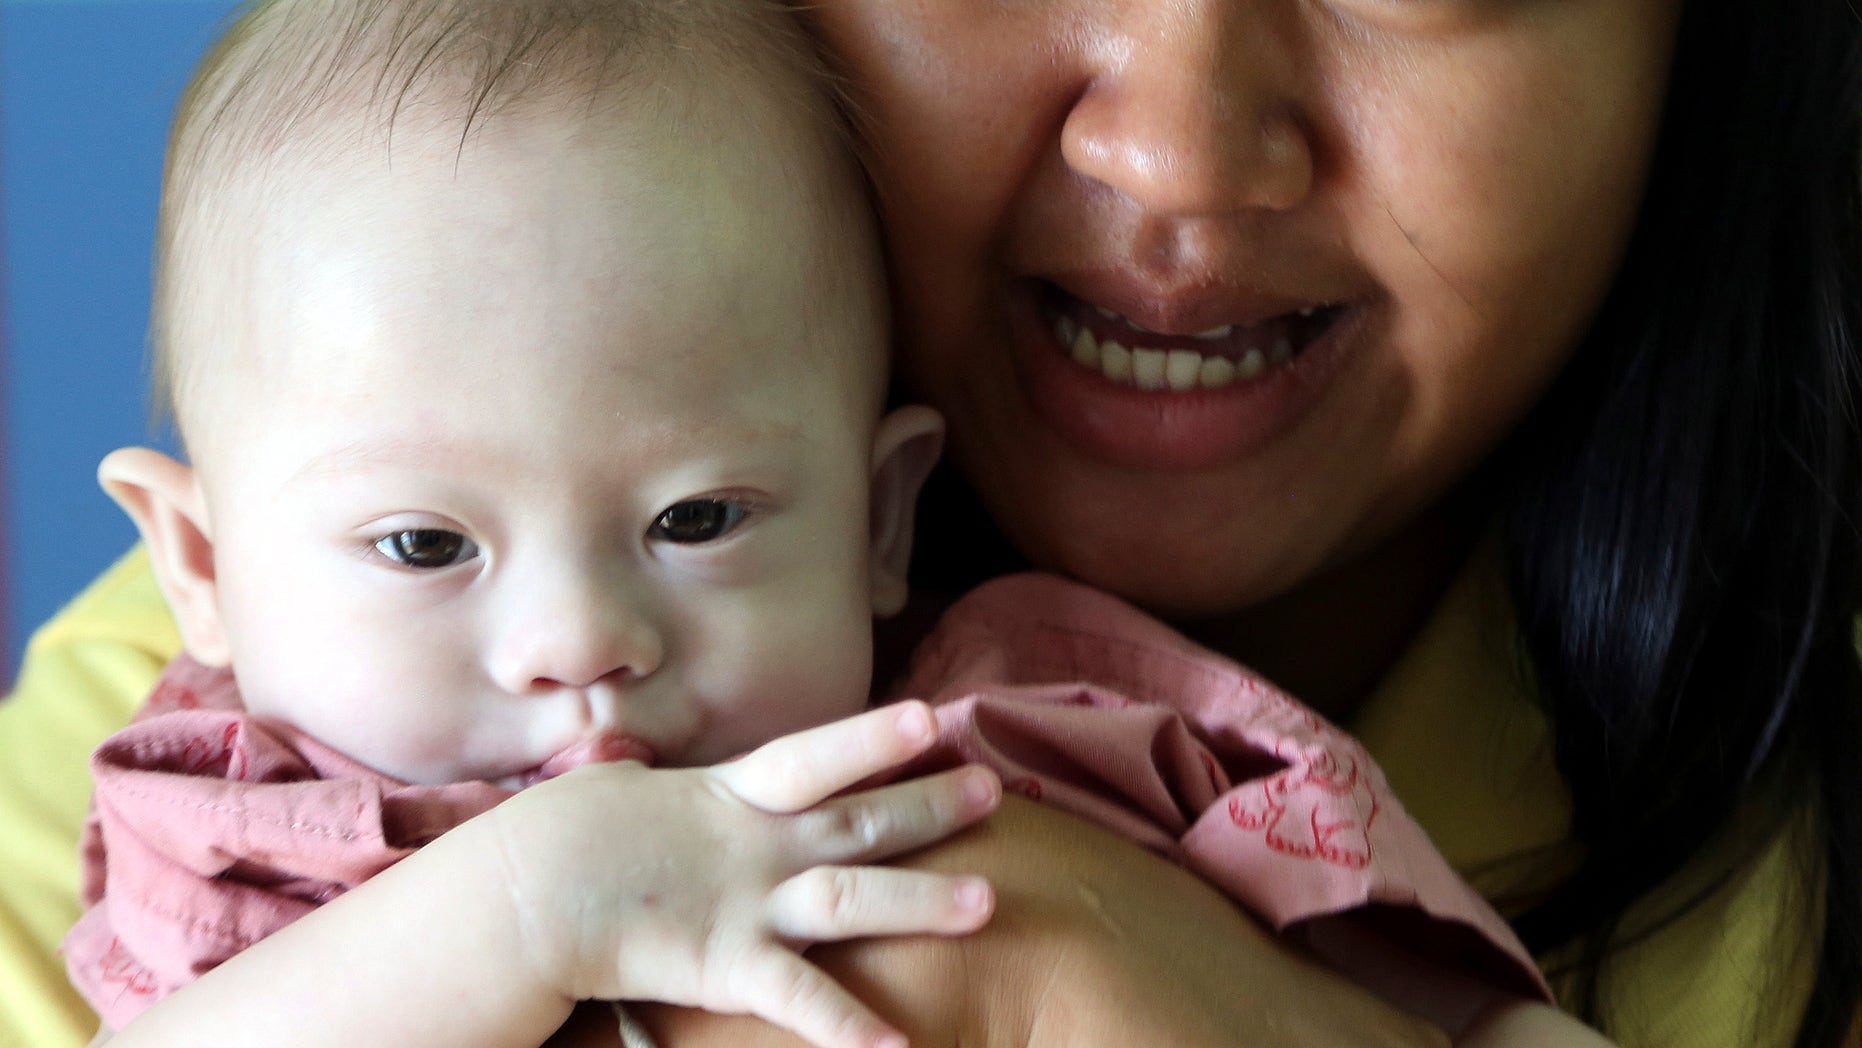 Aug. 3, 2014 - Thai surrogate mother Pattaramon Chanbua, 21, with Gammy, a 9-month old boy born with Down syndrome, at a hospital in Chonburi province, southeastern Thailand. The case of an Australian couple accused of abandoning their baby after discovering he had Down syndrome, has shined light on the unregulated business of commercial surrogacy.